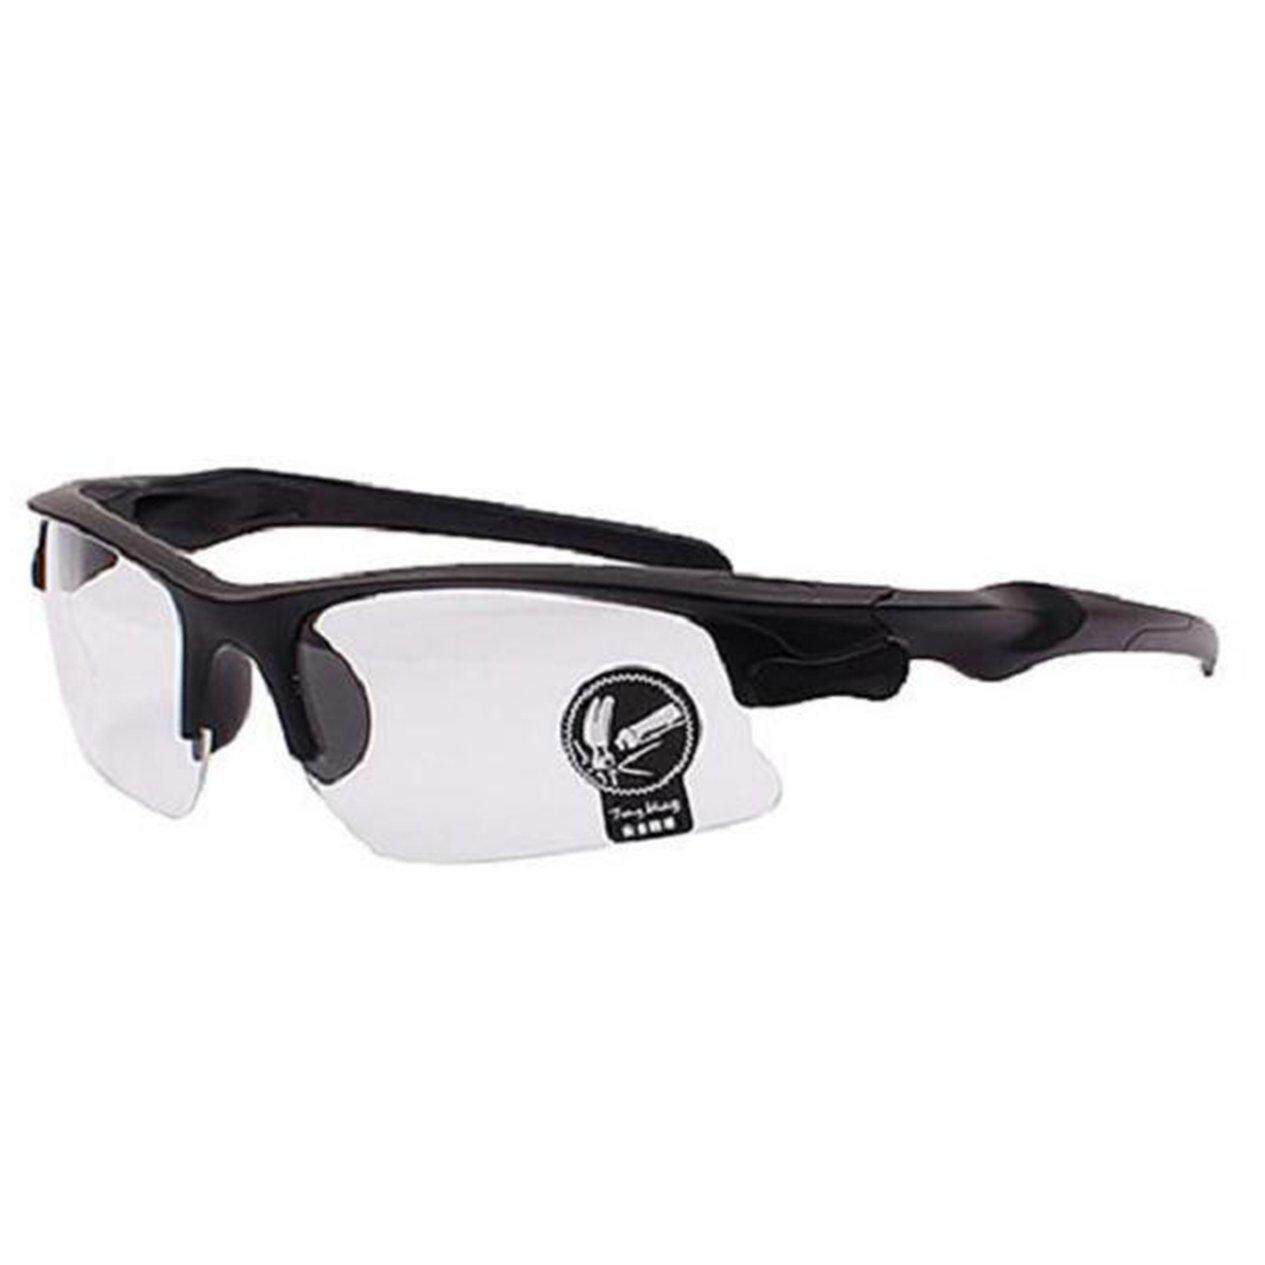 Hot Sellers Men's Explosion-proof Sunglasses Outdoor Riding Glasses Bicycle Sunglasses